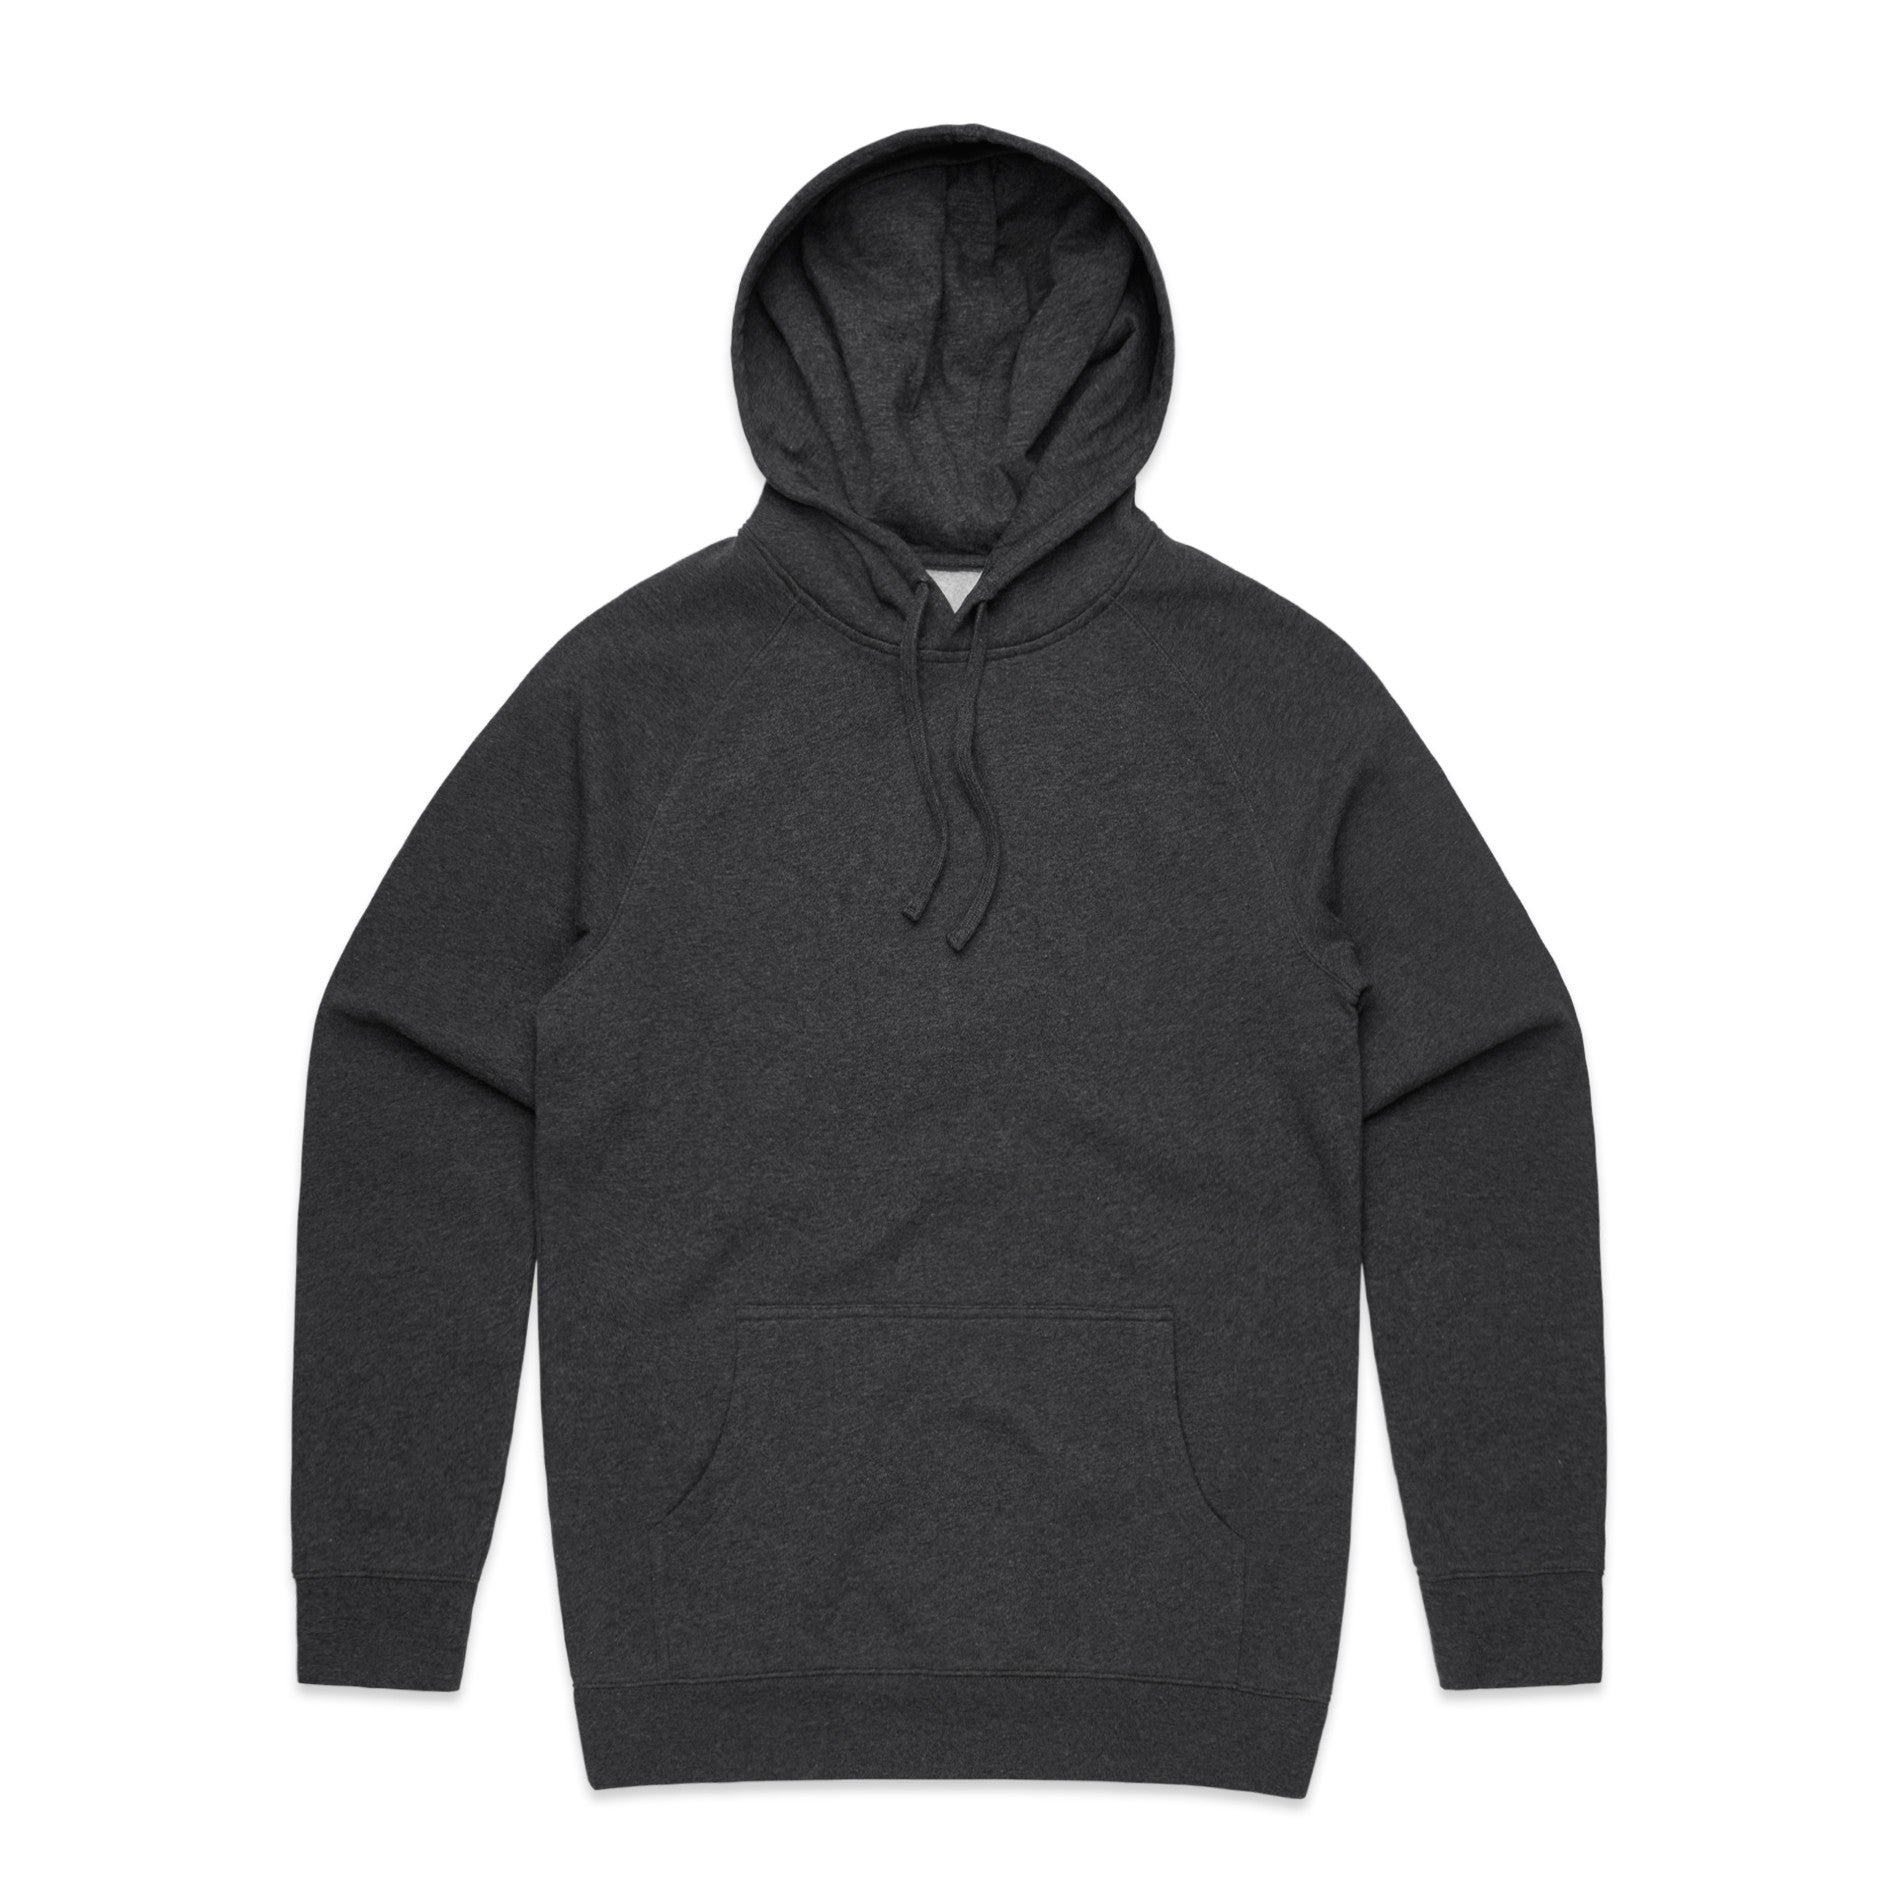 AS Colour 5101 Supply Unisex Pullover Hoodie